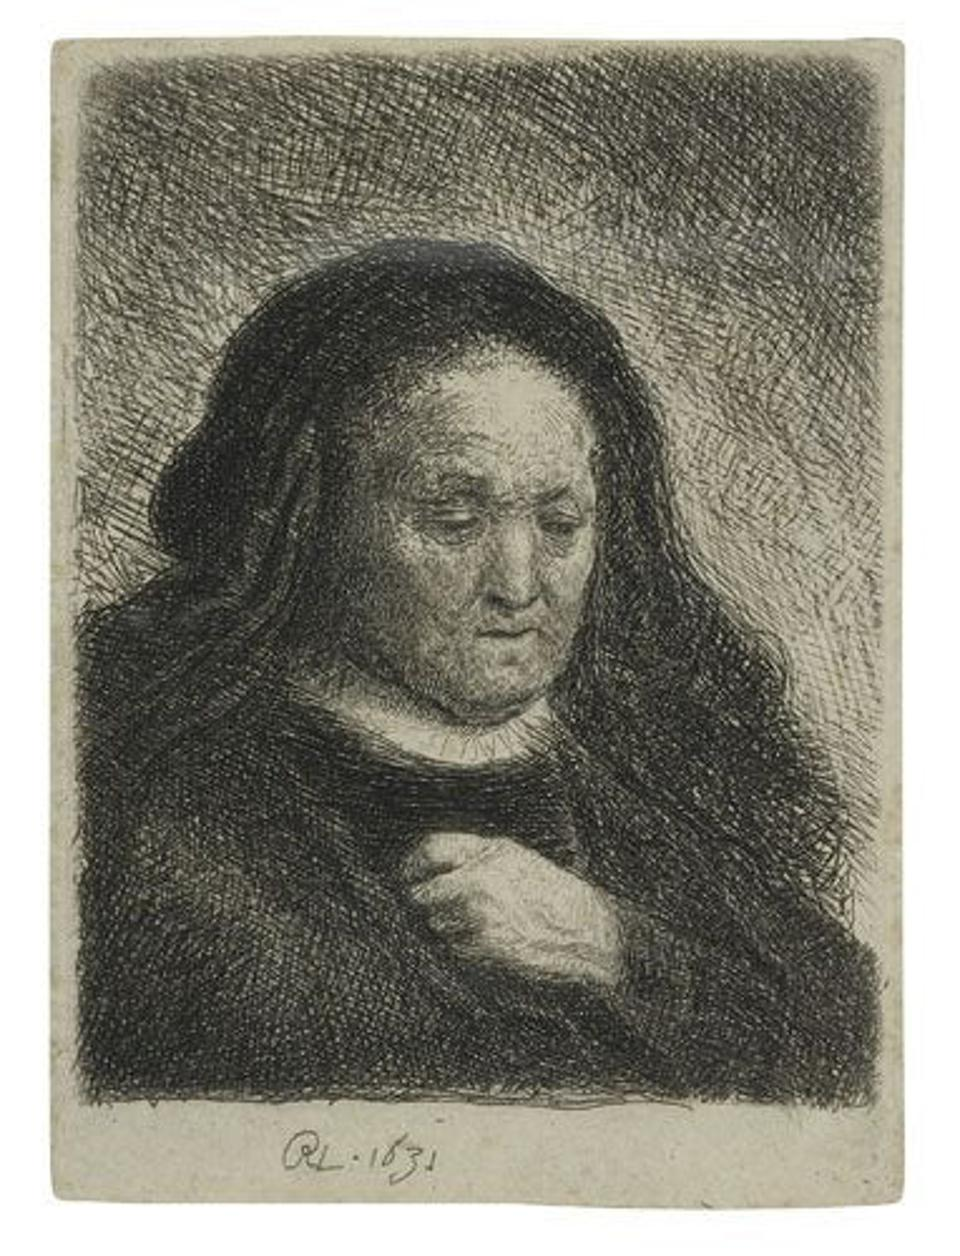 Rembrandt's etching ″The Artist's Mother with her Hand on her Chest: Small Bust″